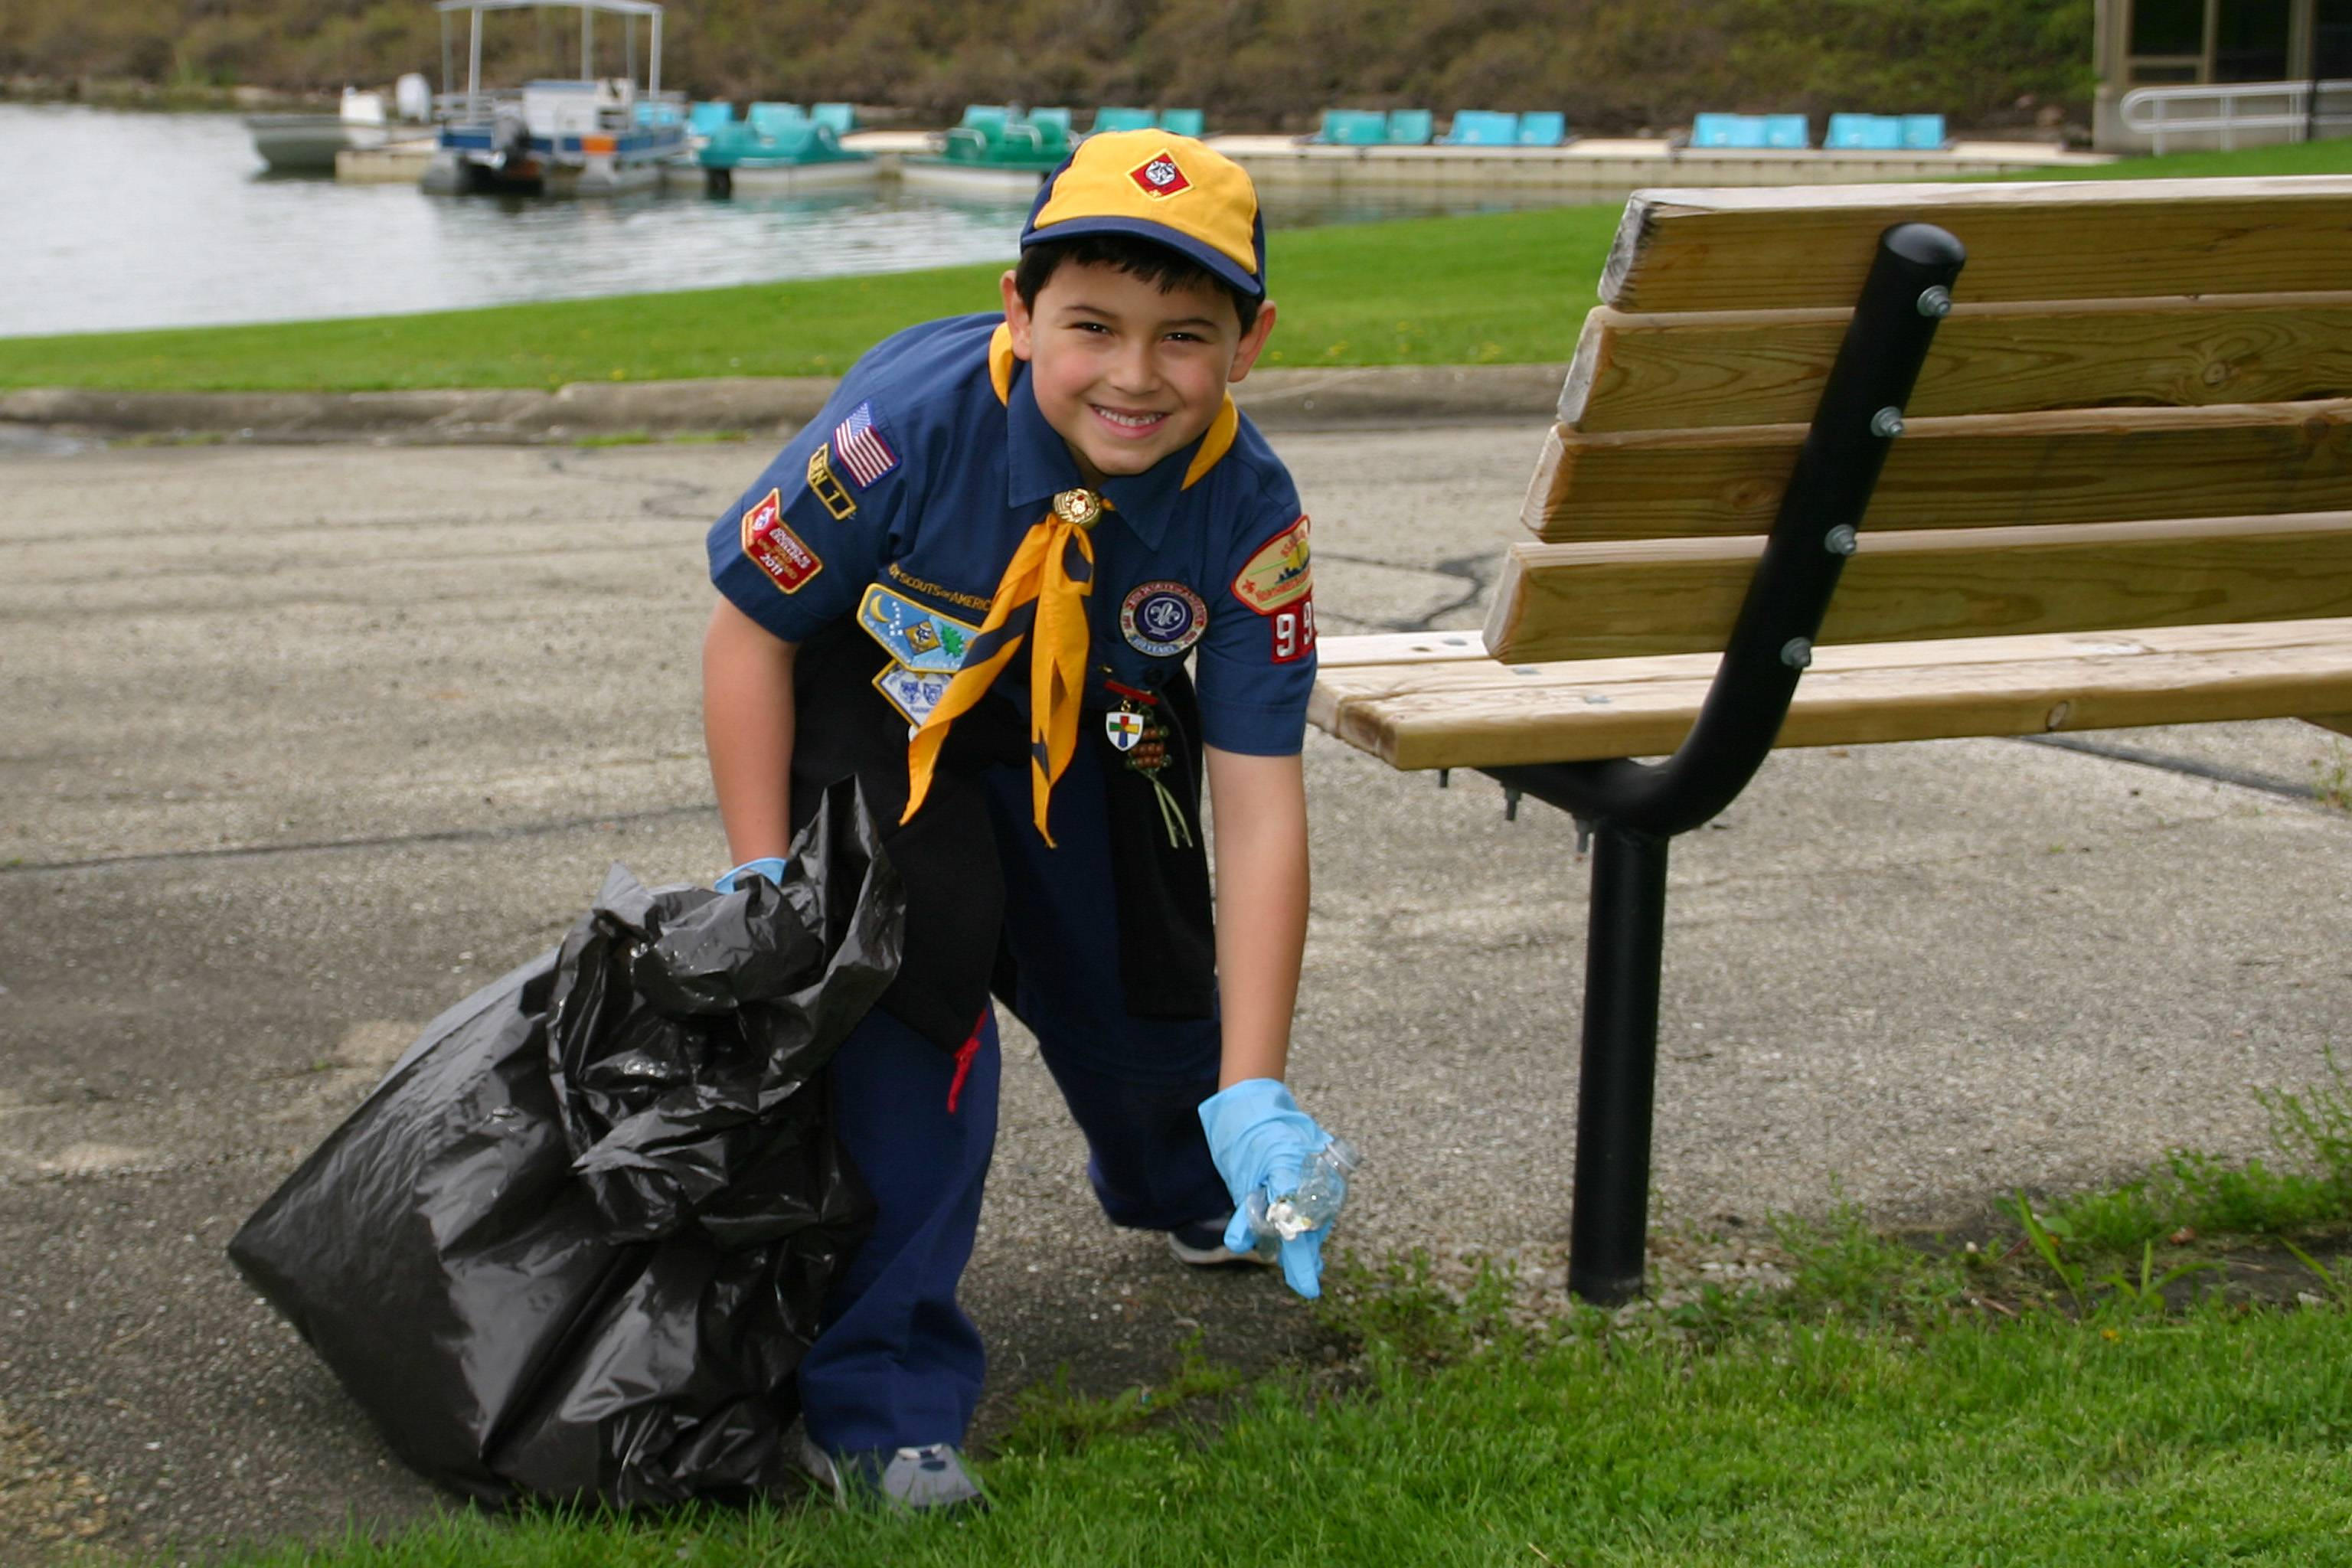 Dorian Michael Schrader, 7, from Cub Scout Pack 997, at Iroquois Community School, picks up trash at Lake Park on Park Clean Up Day, May 11.